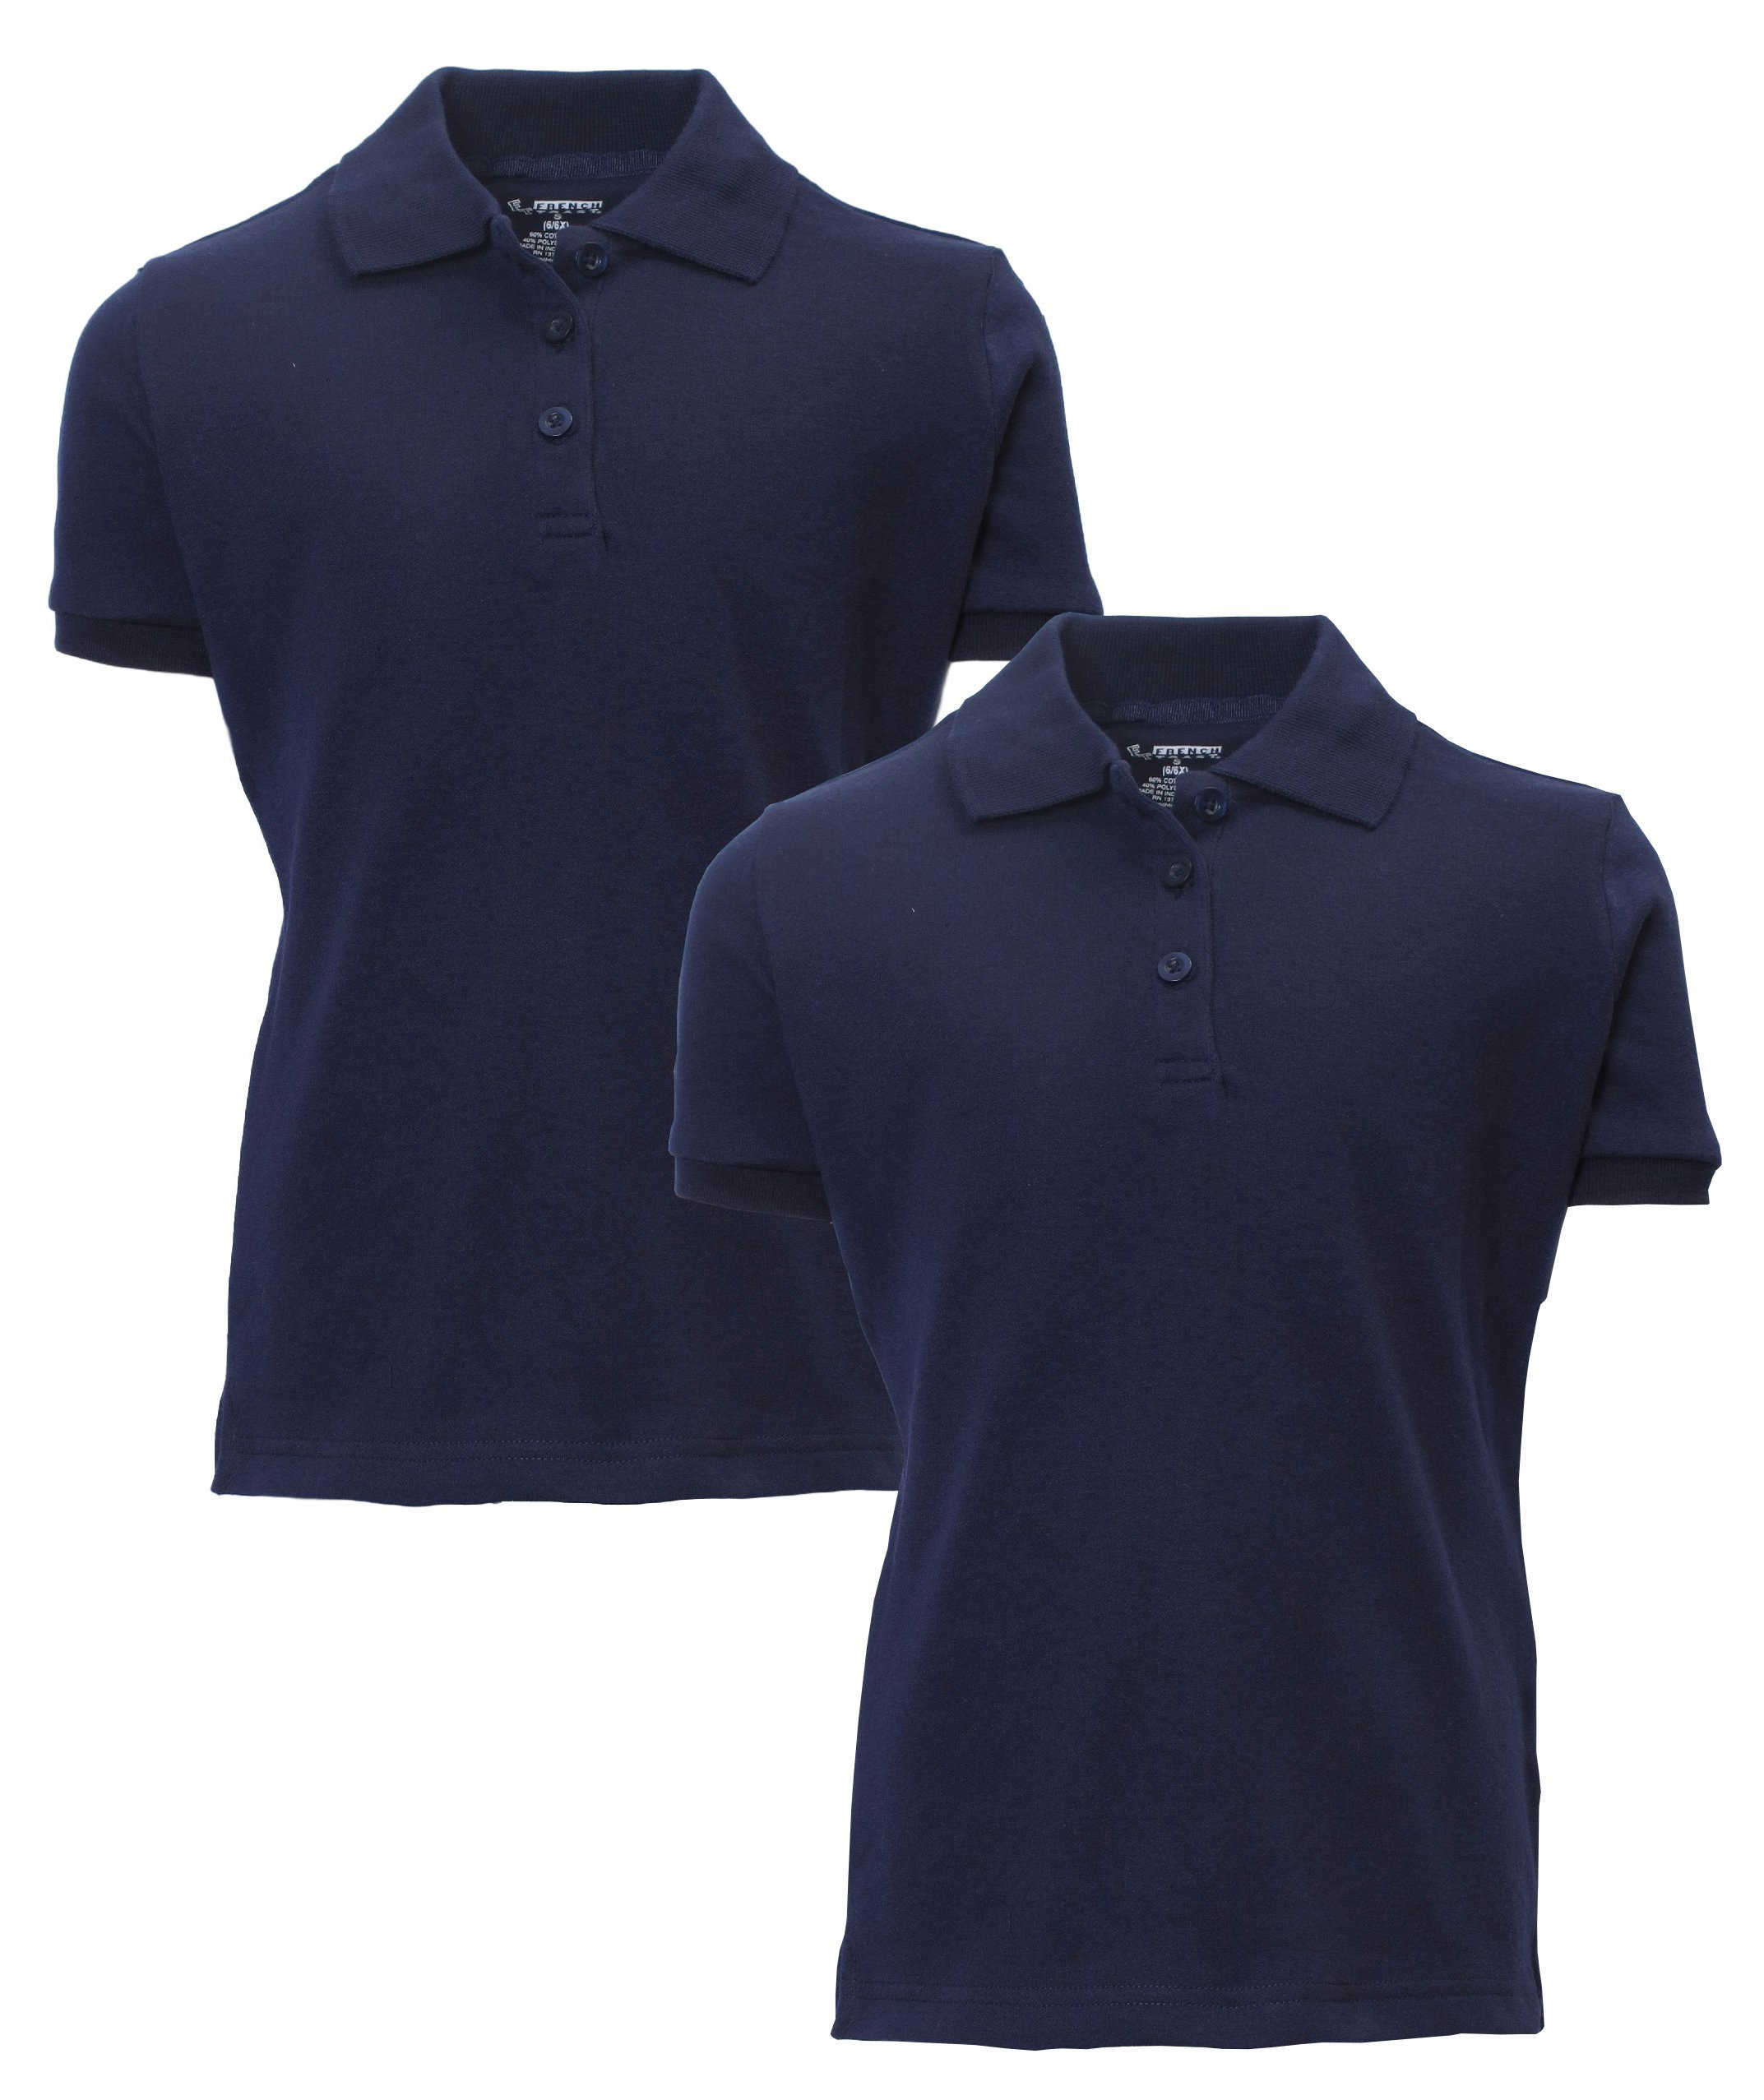 French Toast Girls 2 Pack Uniform Short Sleeve Polo Shirts,Navy,Large 10/12